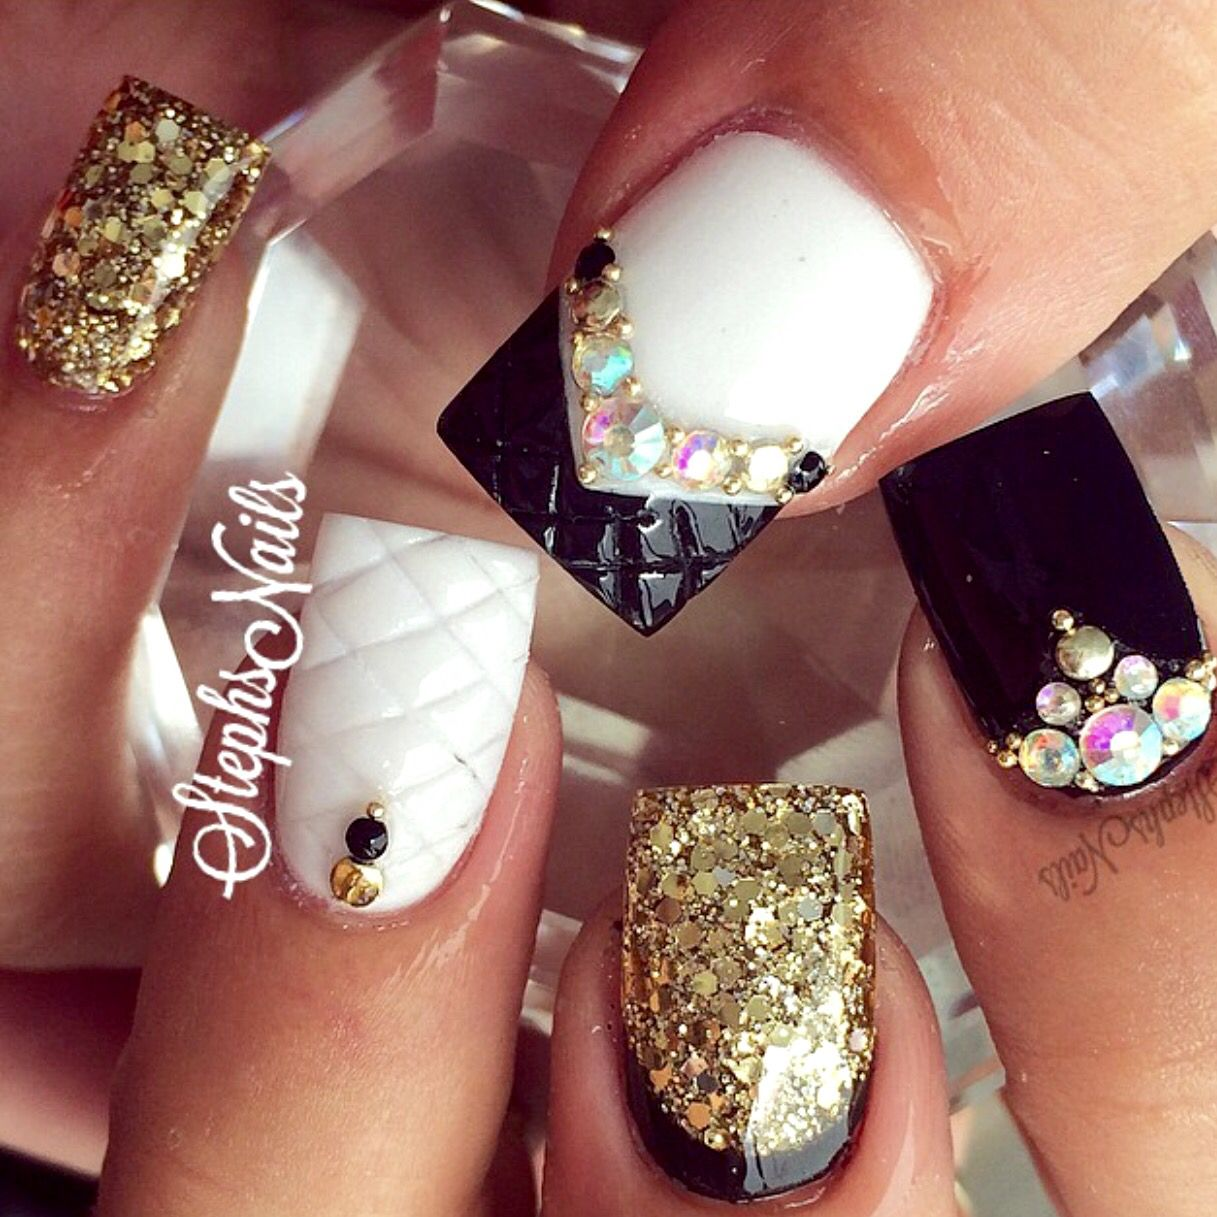 Pin von Ashley Wong auf Nails | Pinterest | Nagelschere, Nageldesign ...